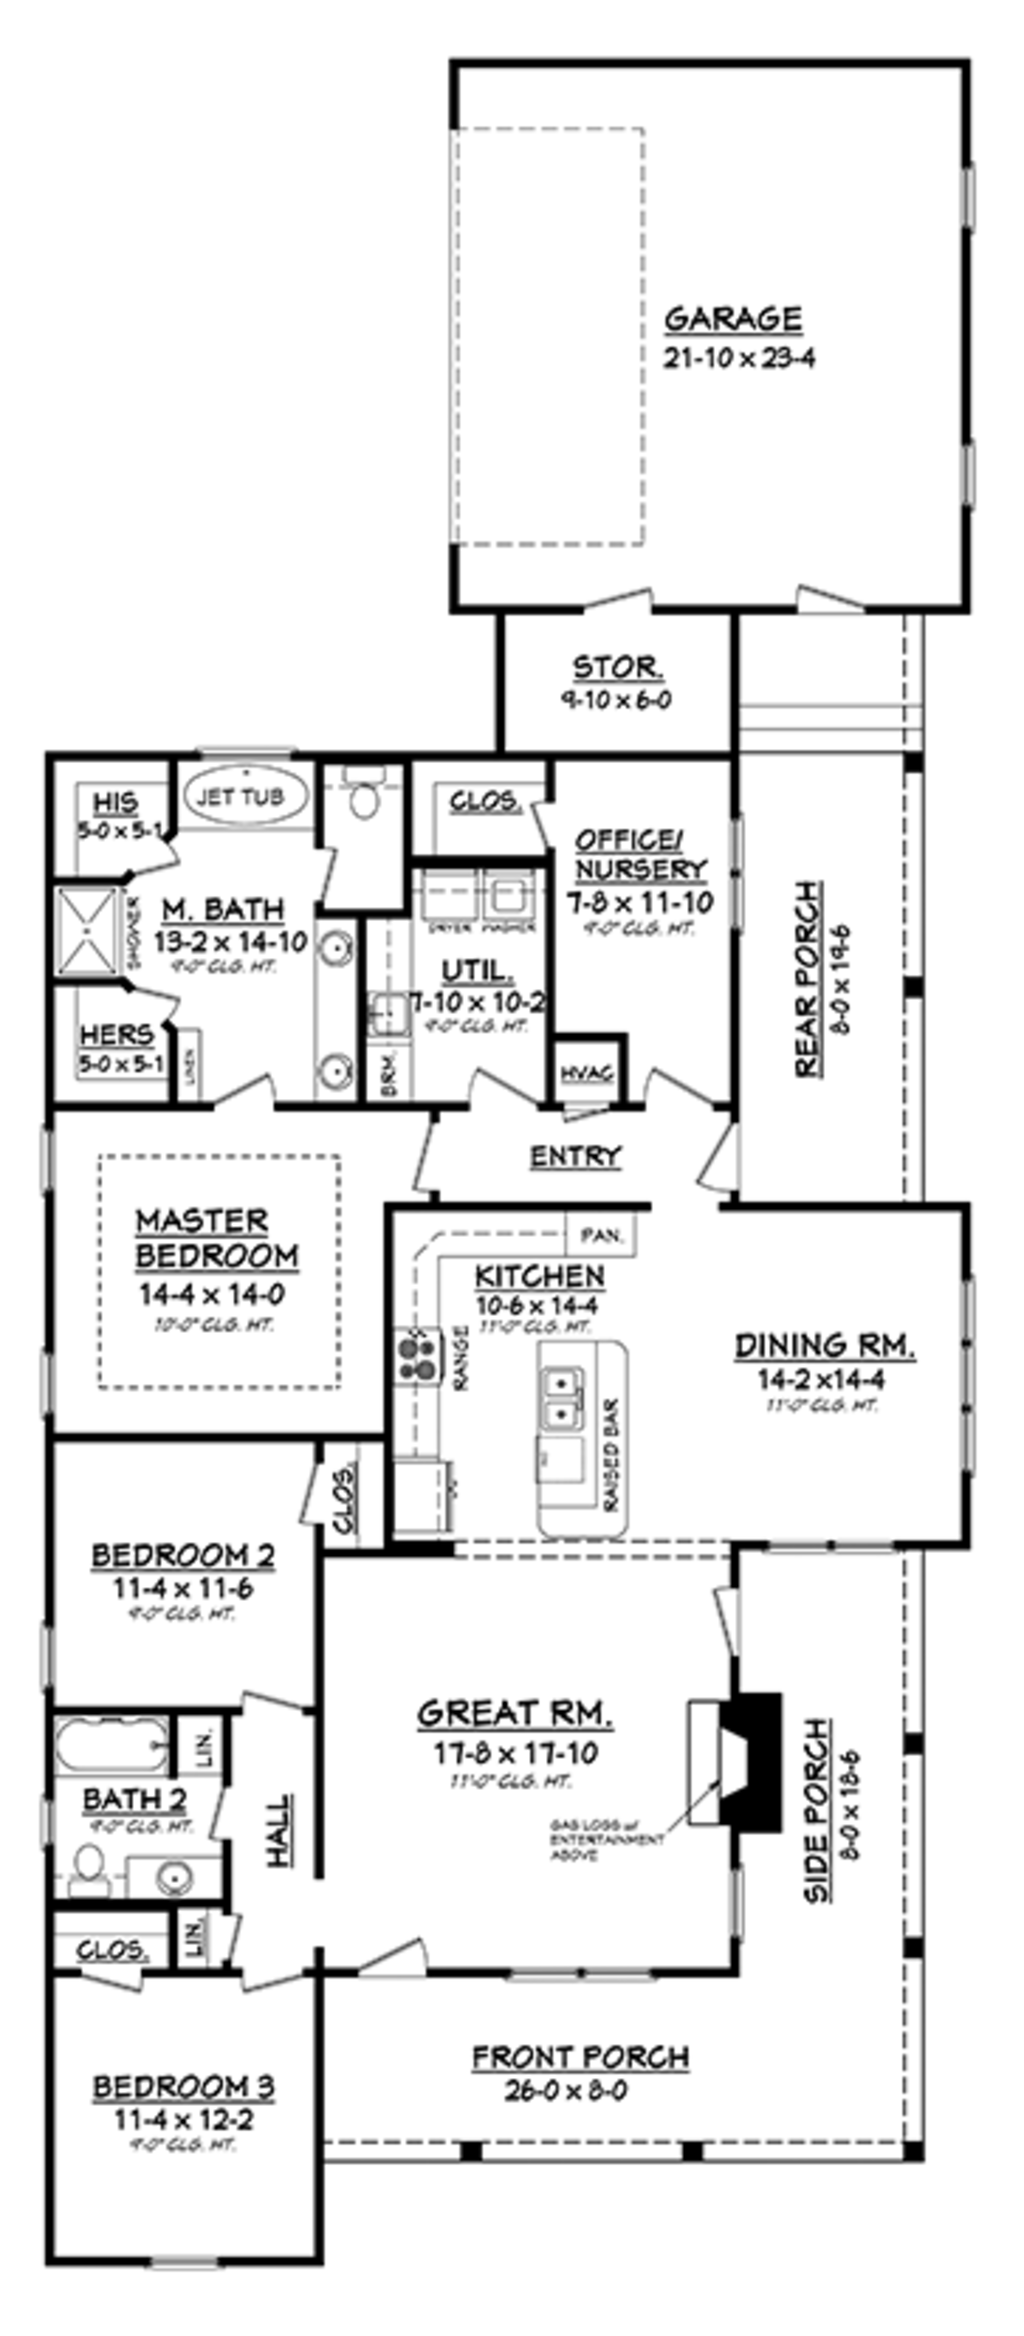 Ranch Style House Plan 3 Beds 2 Baths 1900 Sq Ft Plan